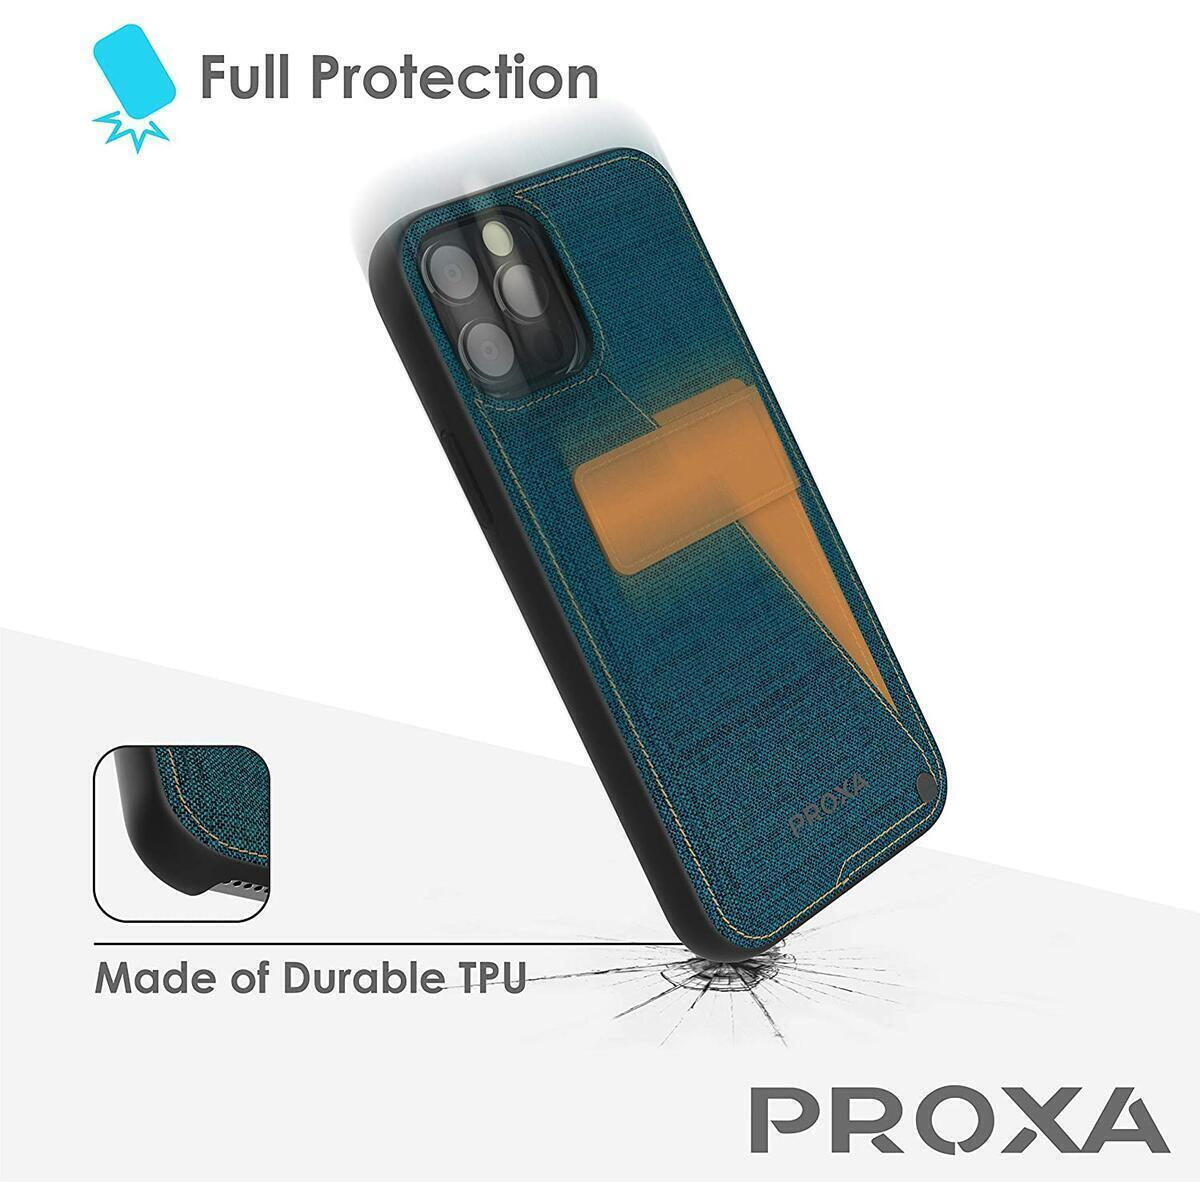 PROXA iPhone 12 / iPhone 12 Pro Rotational Wallet Case with Hidden Card Holder Slot- Cover with Shockproof TPU & Hard PC [Protective/Scratchproof]-for Apple iPhone 12/12 Pro 6.1 inch- Pacific Blue